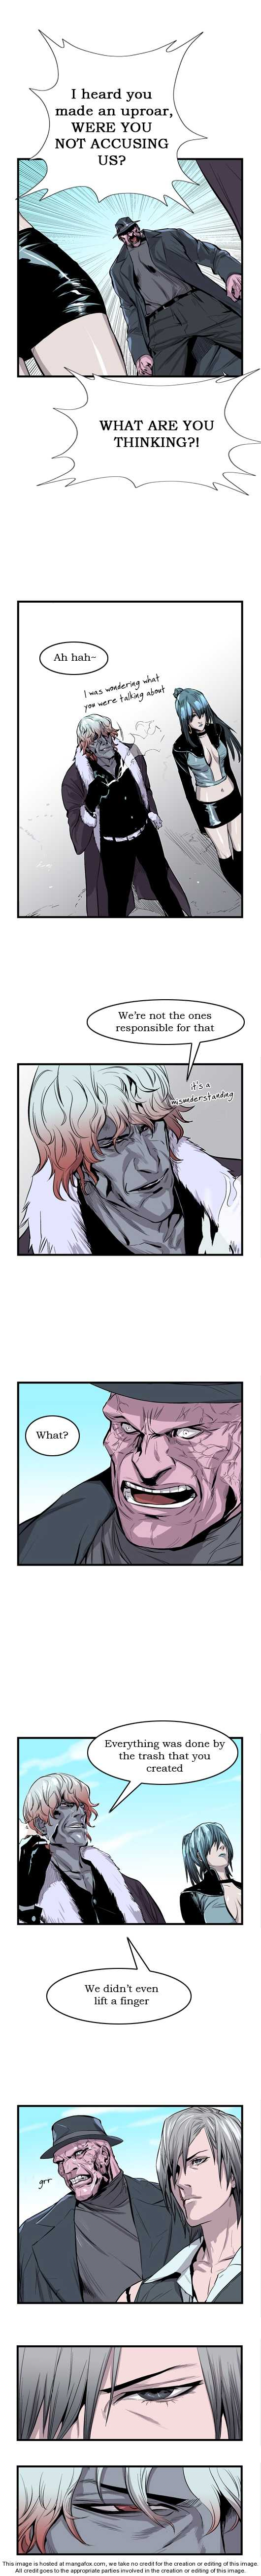 Noblesse 41 Page 2